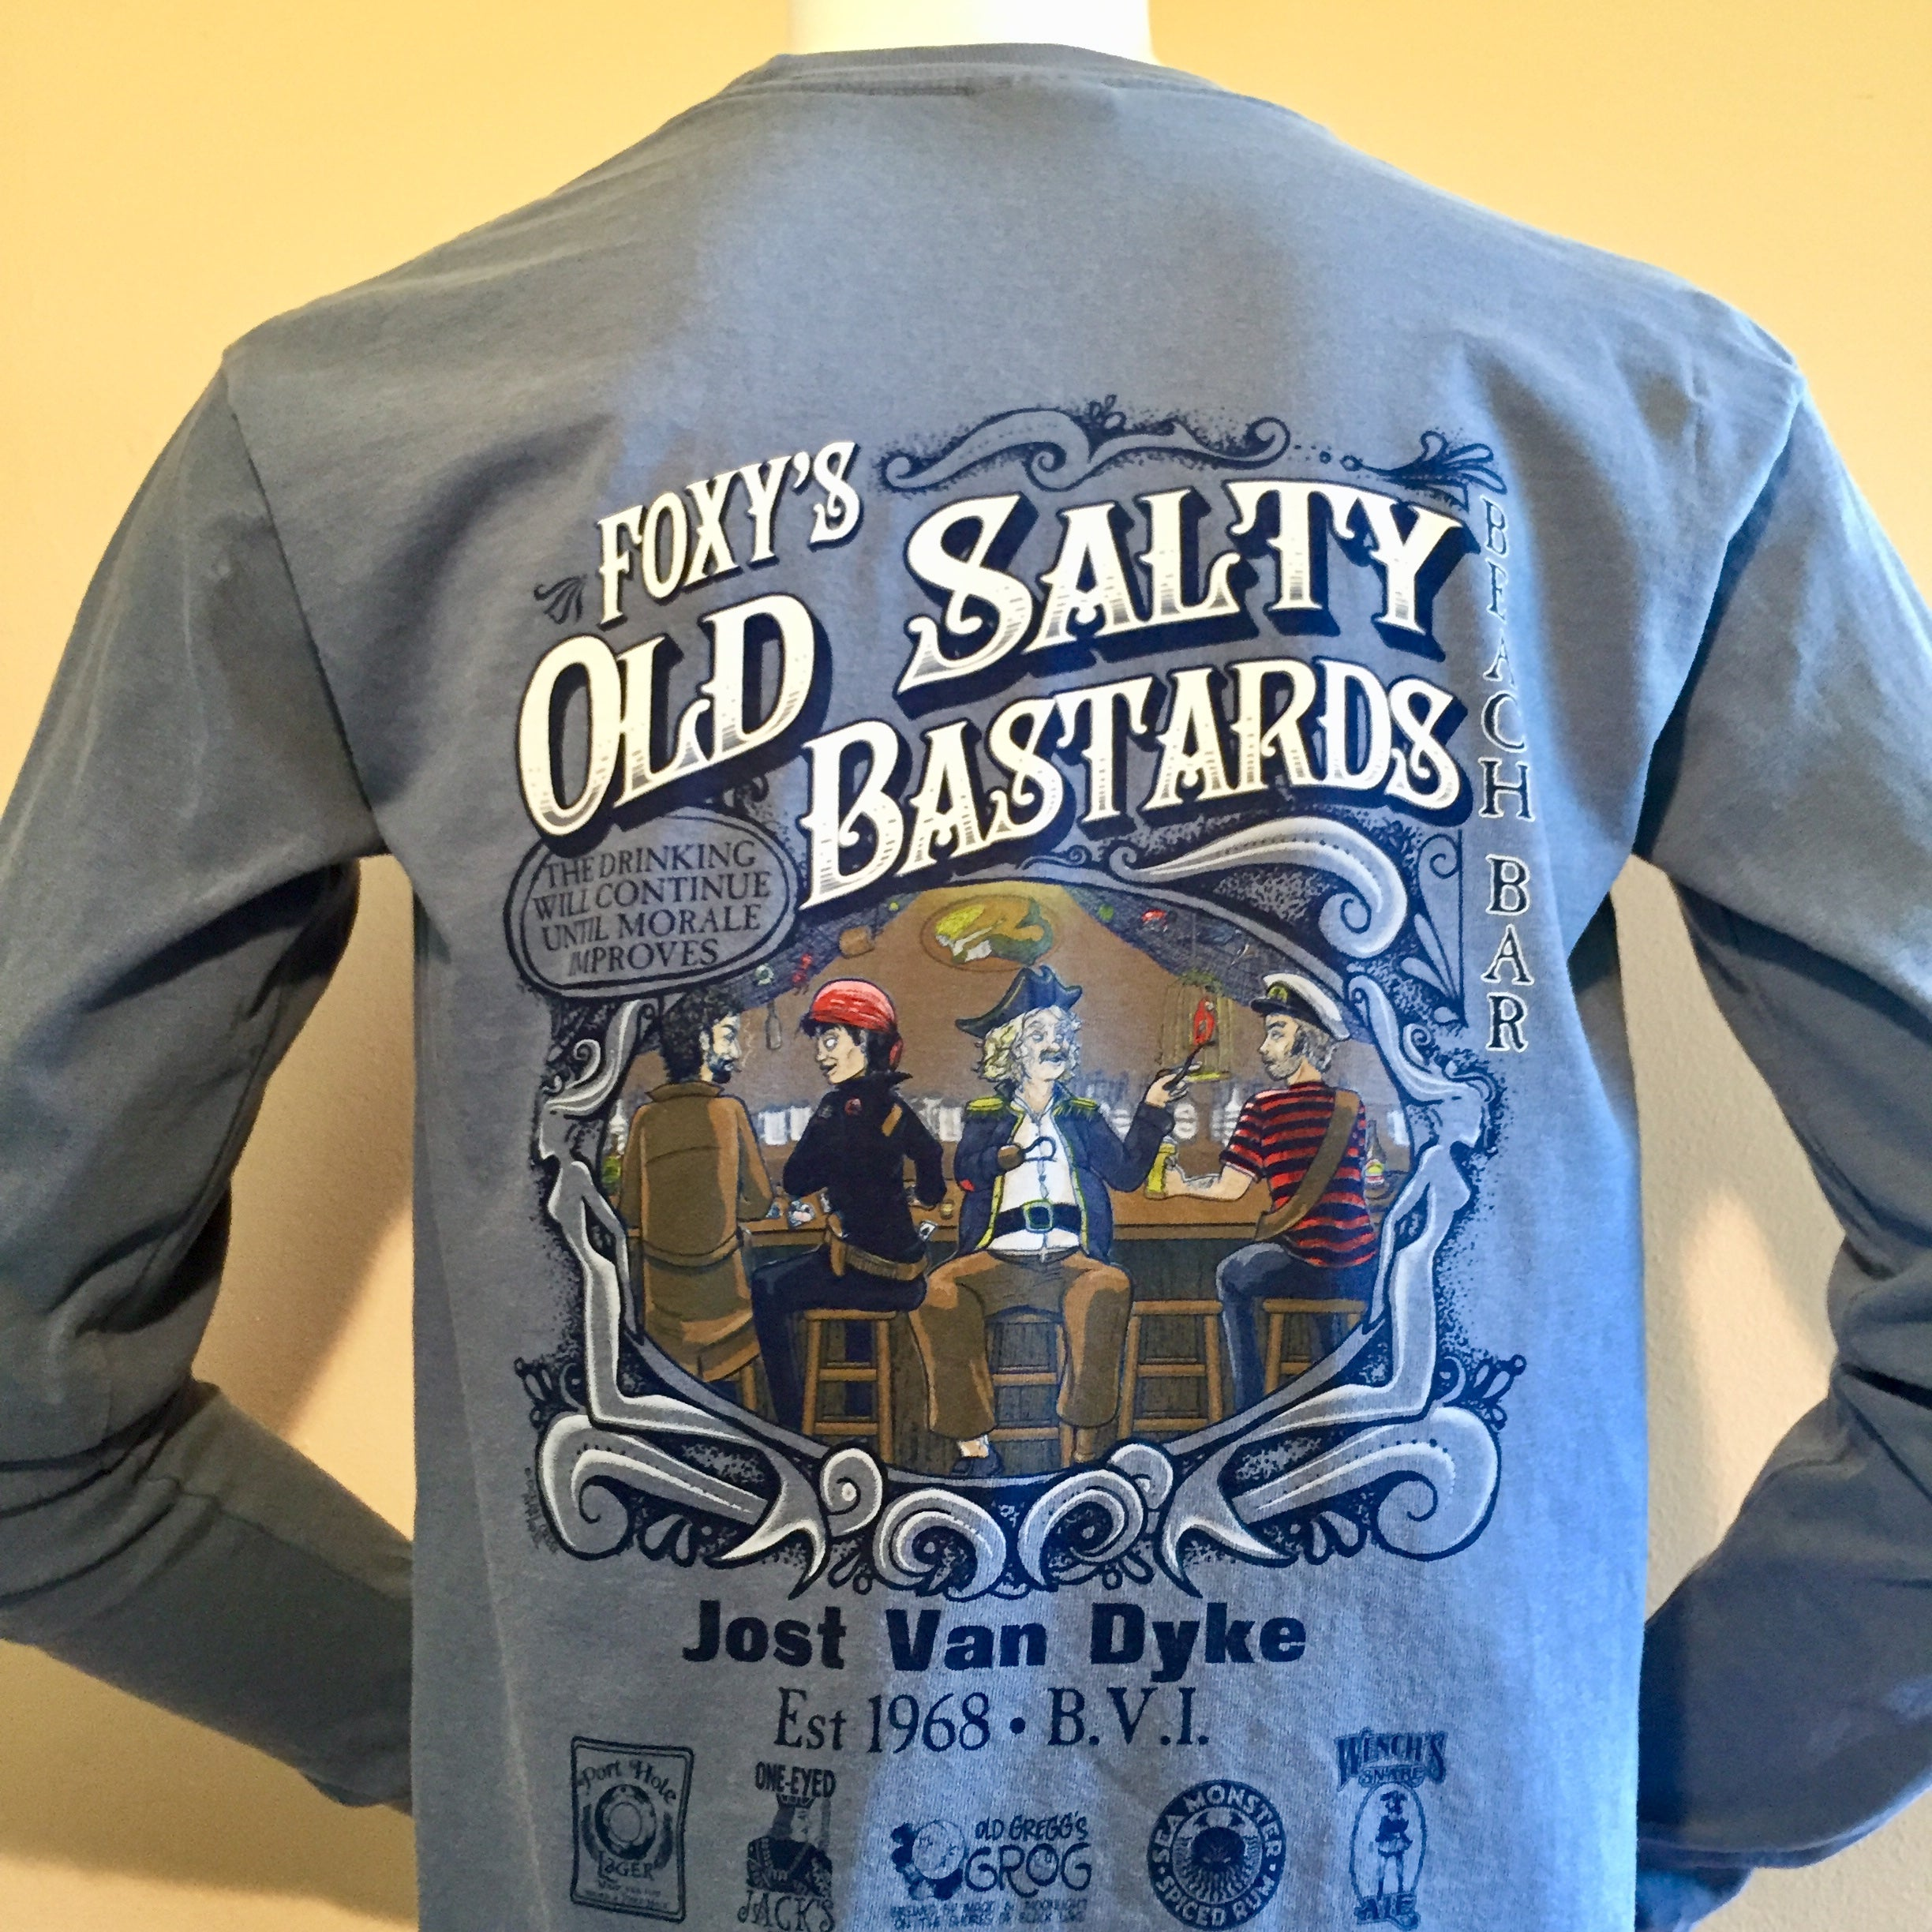 Foxy's 'Old Salty Bs' Long Sleeve Tee